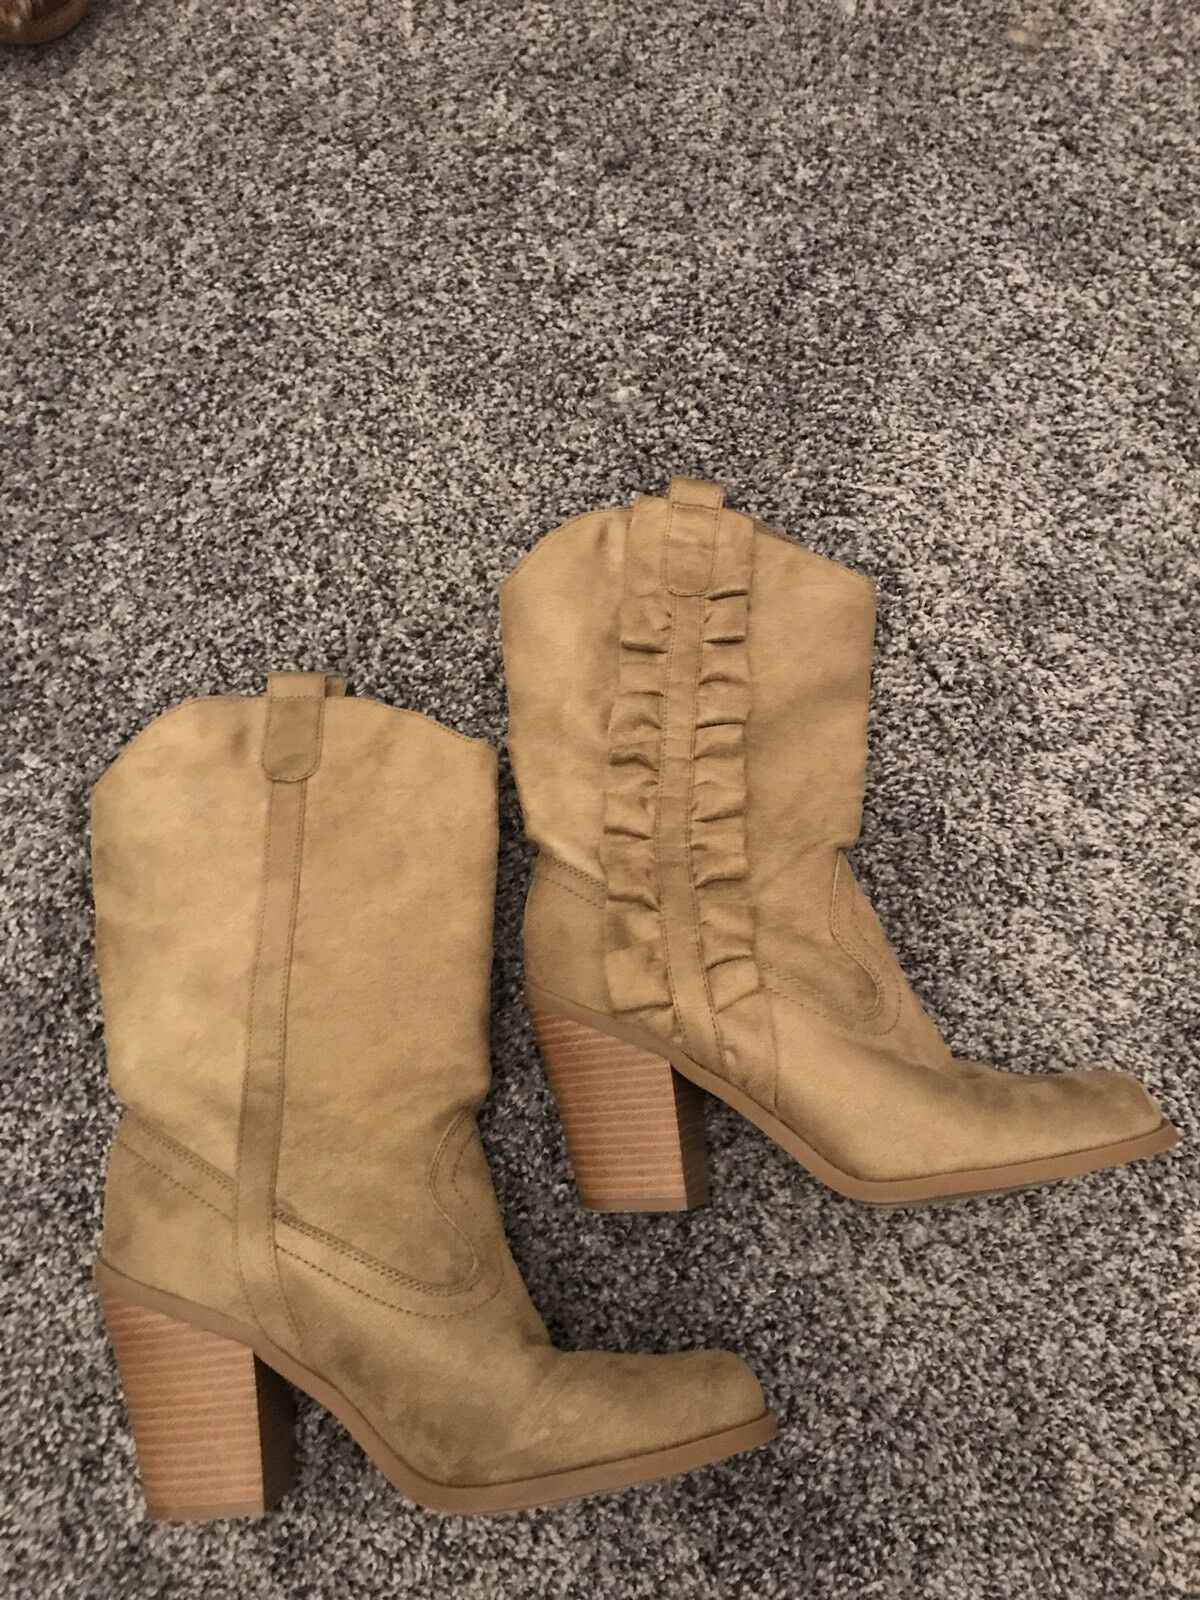 Kensie Girl Boots Shoes Taupe Suede Khaki Light Brown Faux Suede Taupe Mid-calf Size 8.5 888c7b